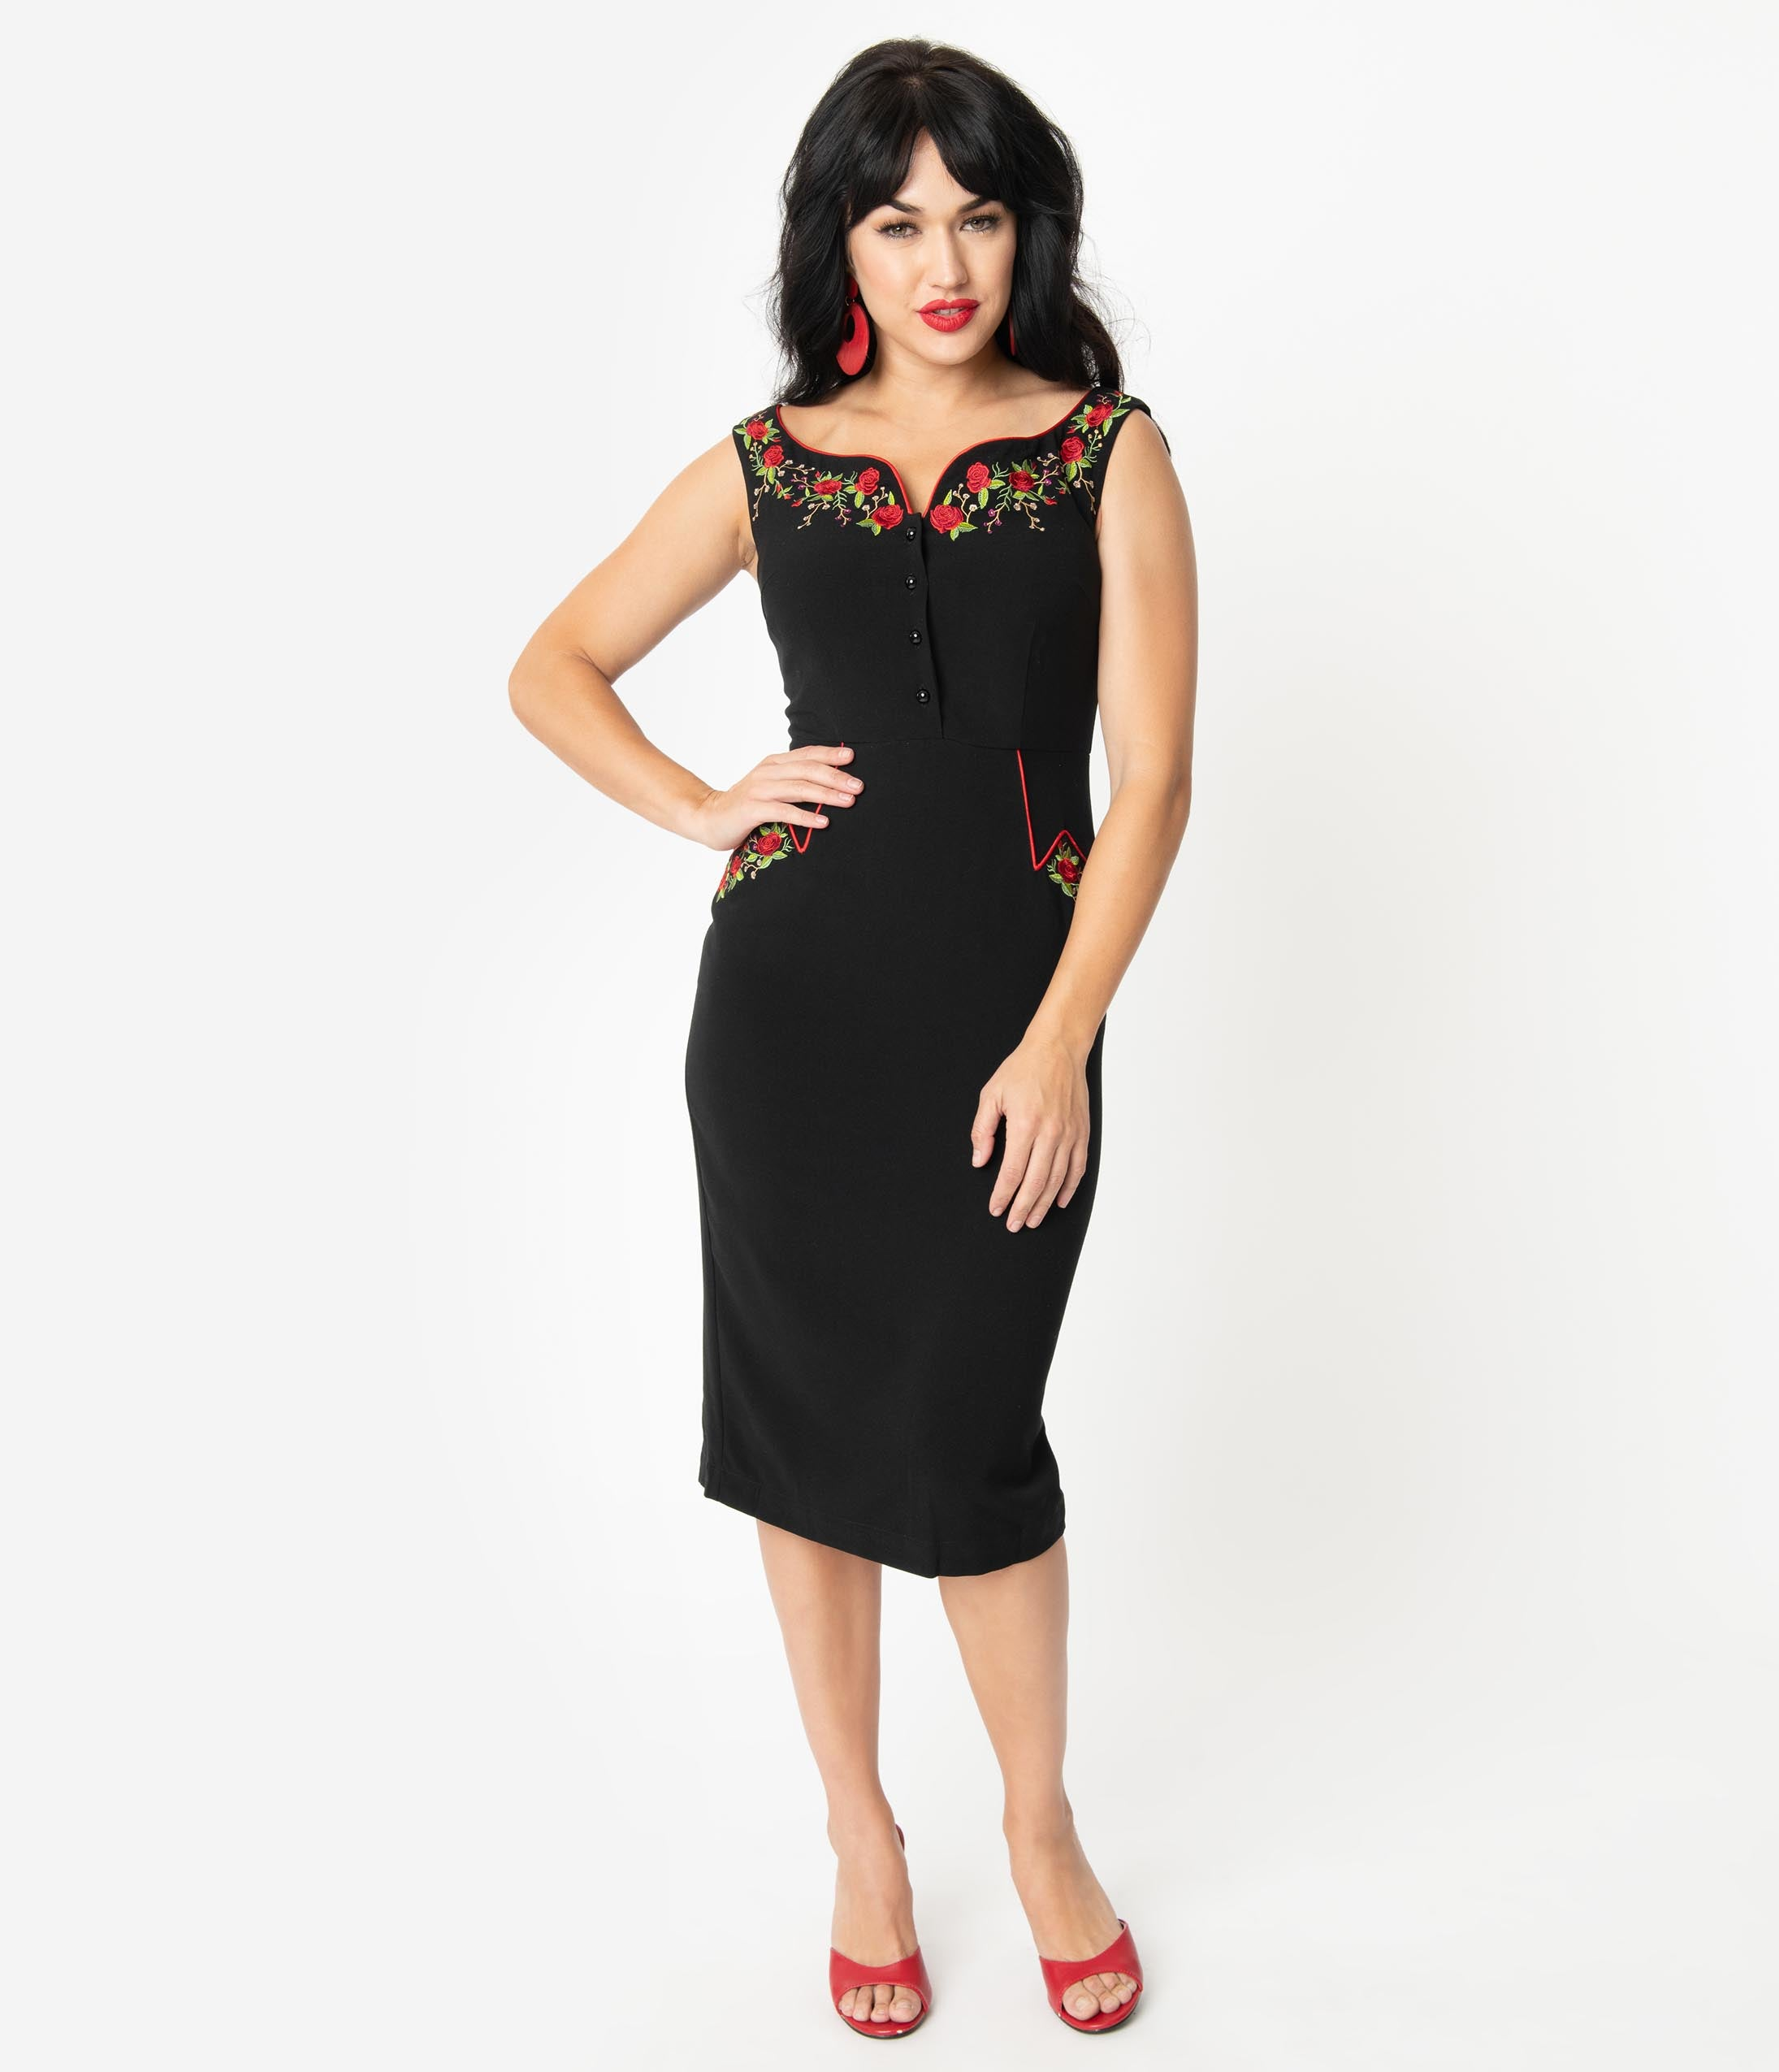 Rockabilly Dresses | Rockabilly Clothing | Viva Las Vegas Voodoo Vixen Black  Red Embroidered Floral Sleeveless Pencil Dress $82.00 AT vintagedancer.com